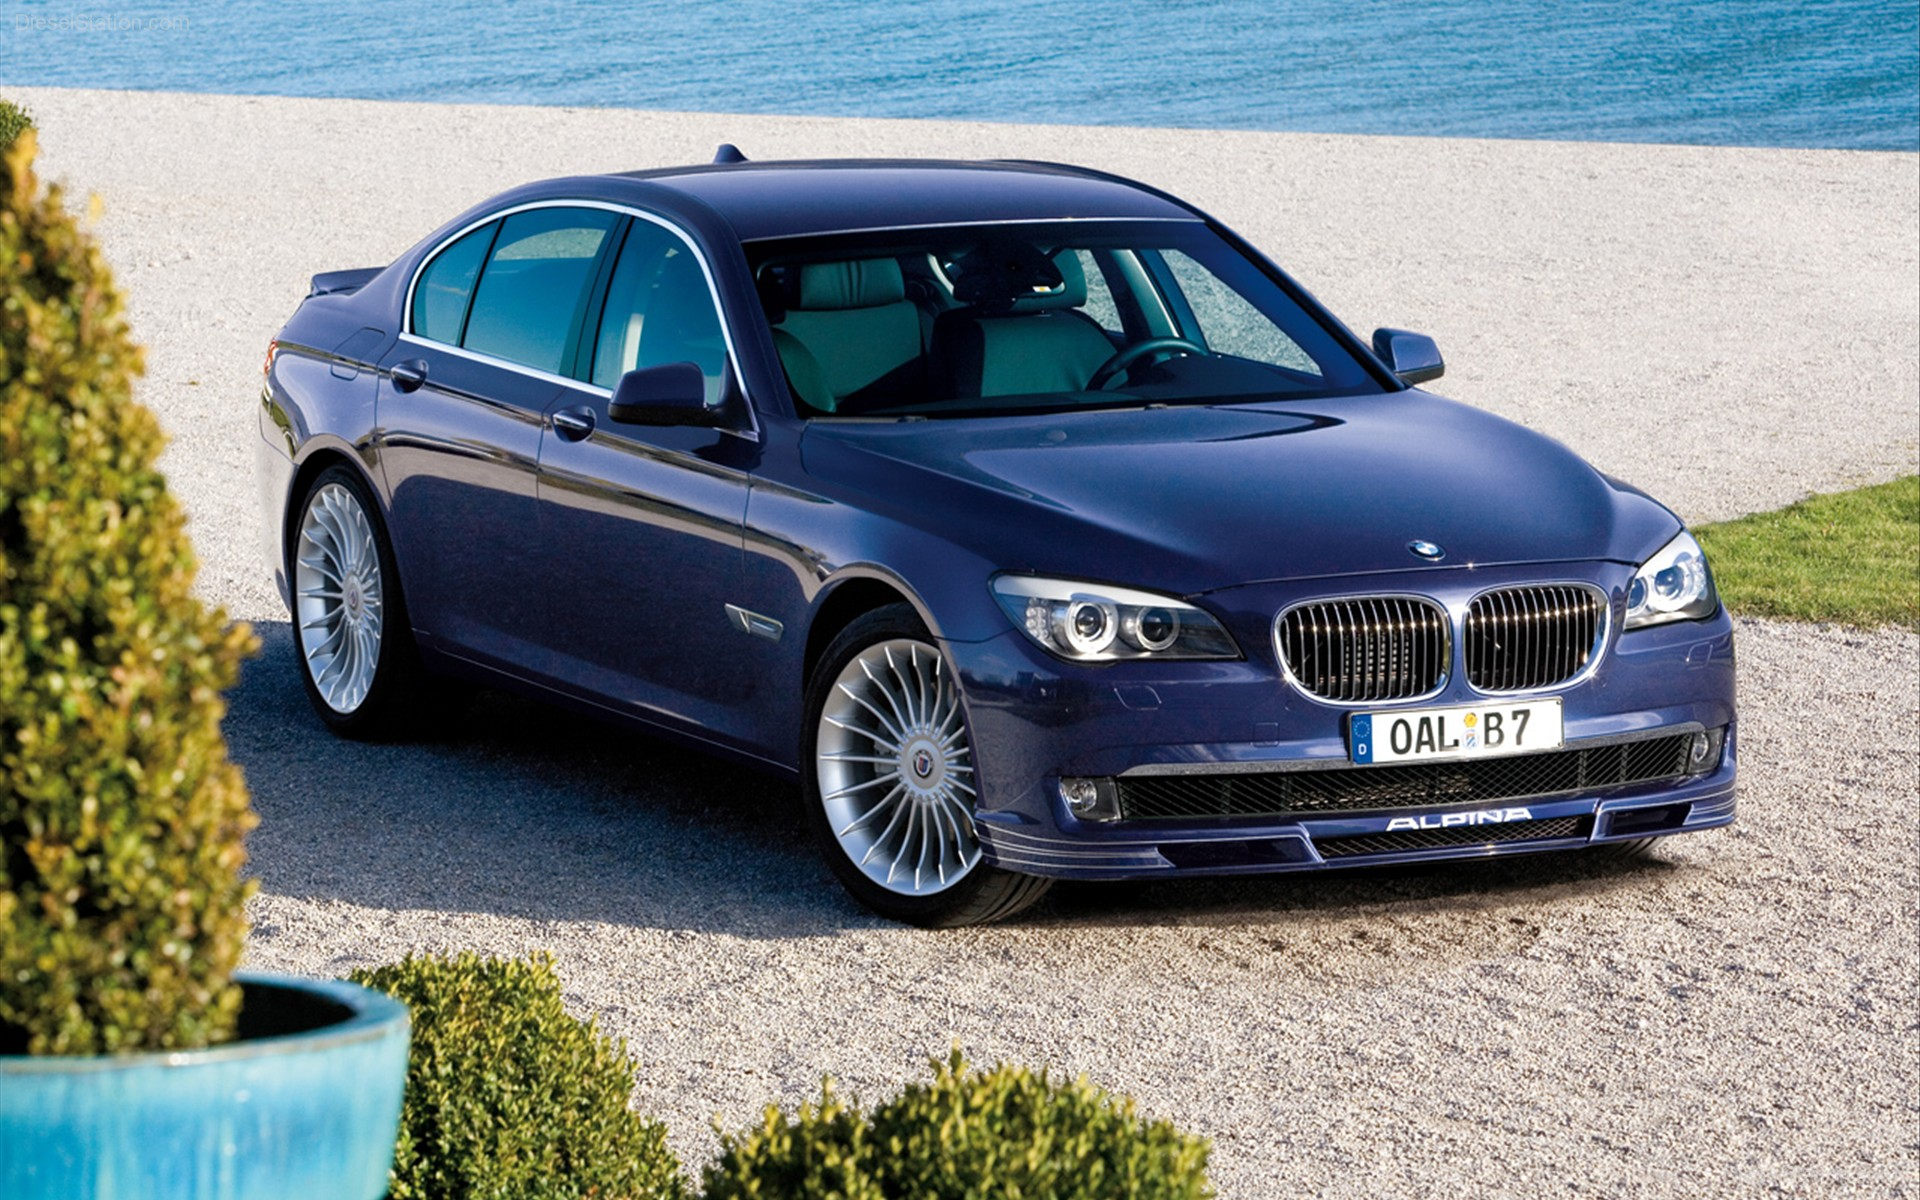 2009-BMW-Alpina-B7-Bi-Turbo-widescreen-01.jpg